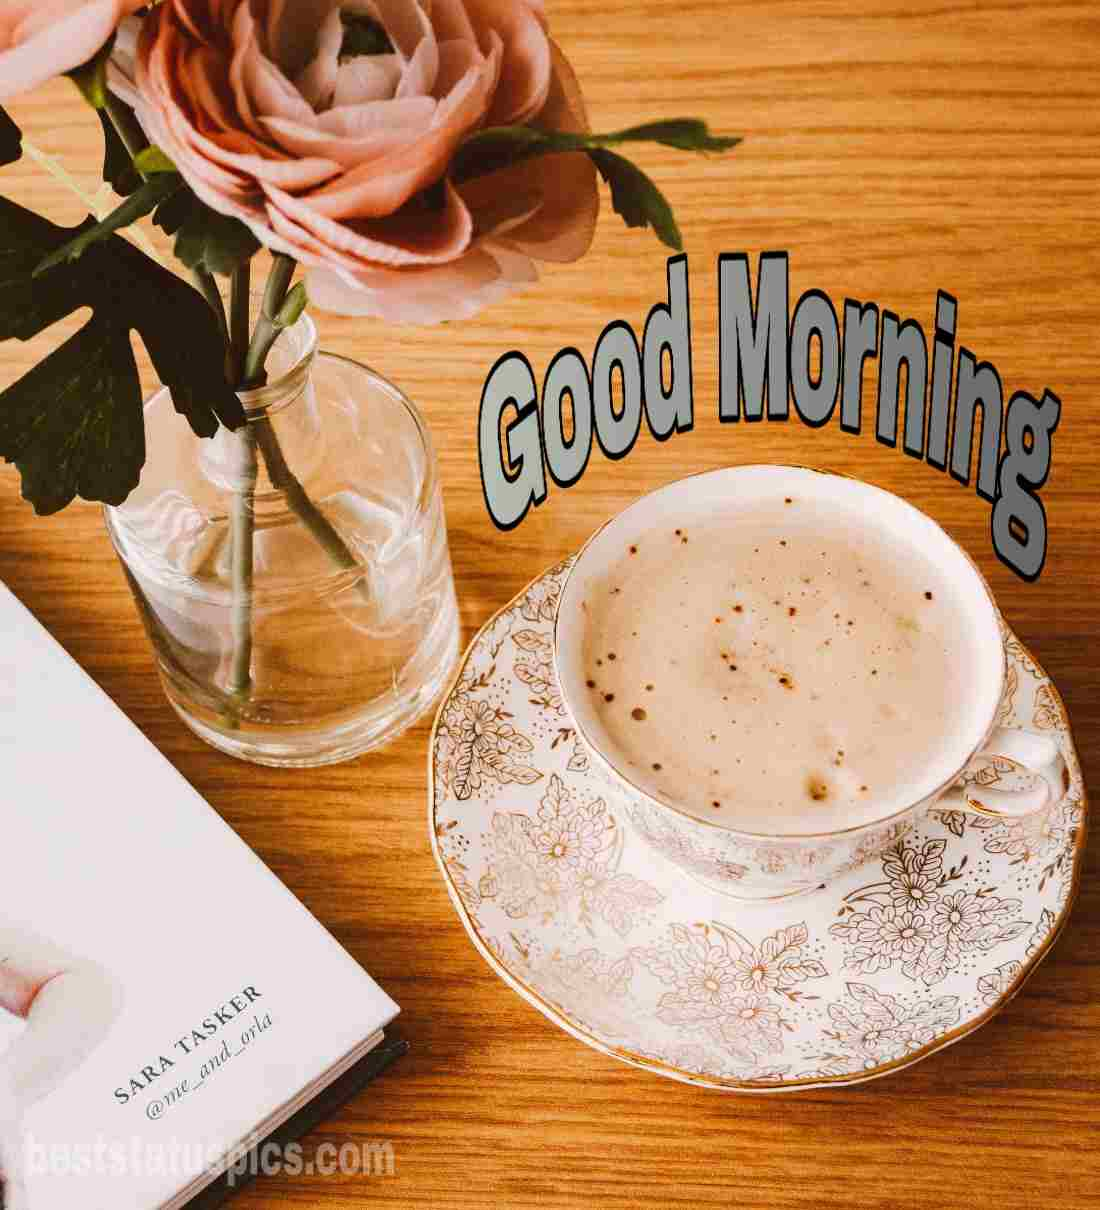 cup of coffee, good morning wishes and pink rose pic